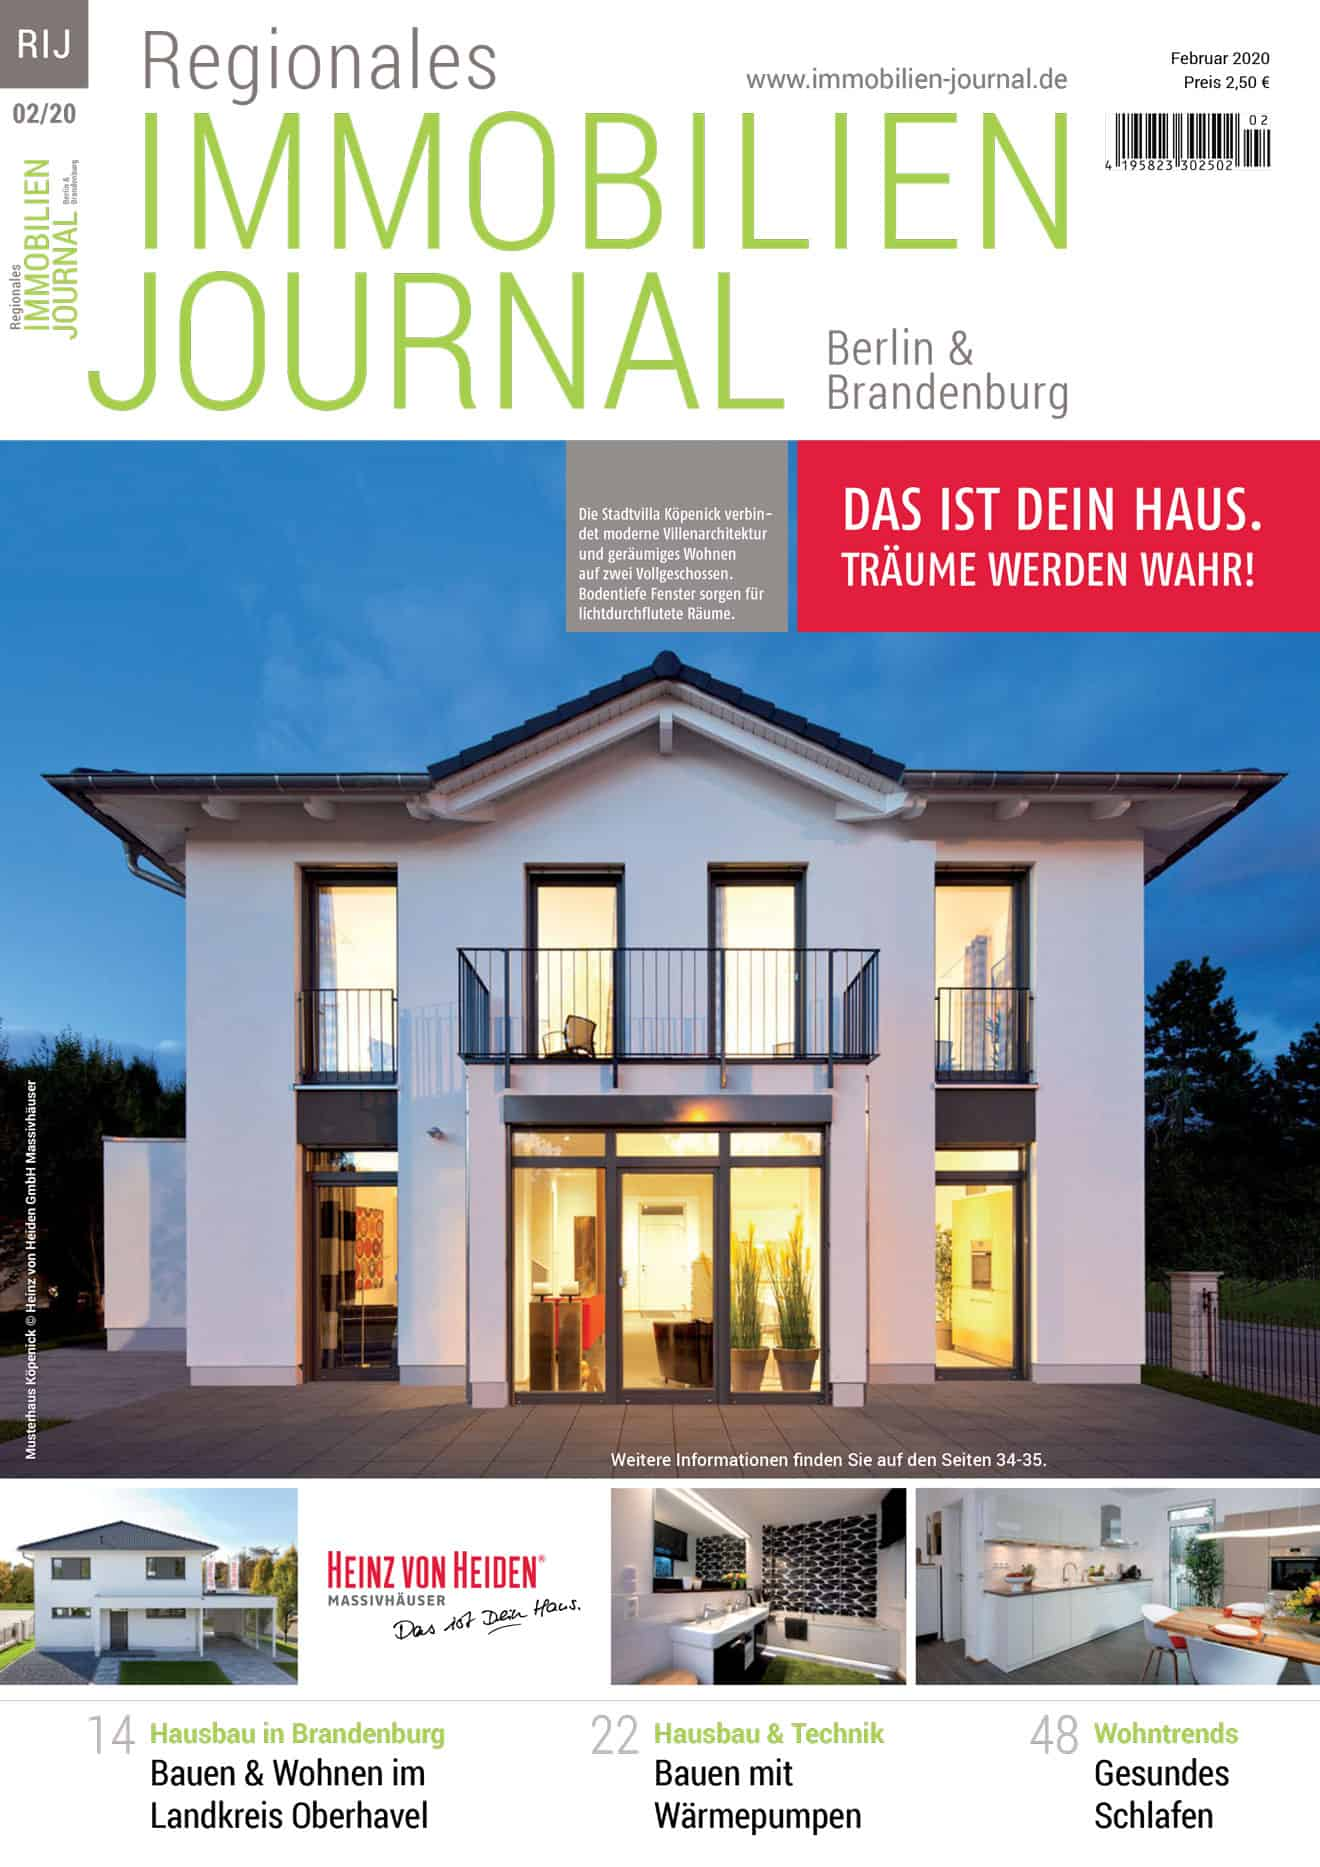 Regionales Immobilien Journal Berlin & Brandenburg 02-2020